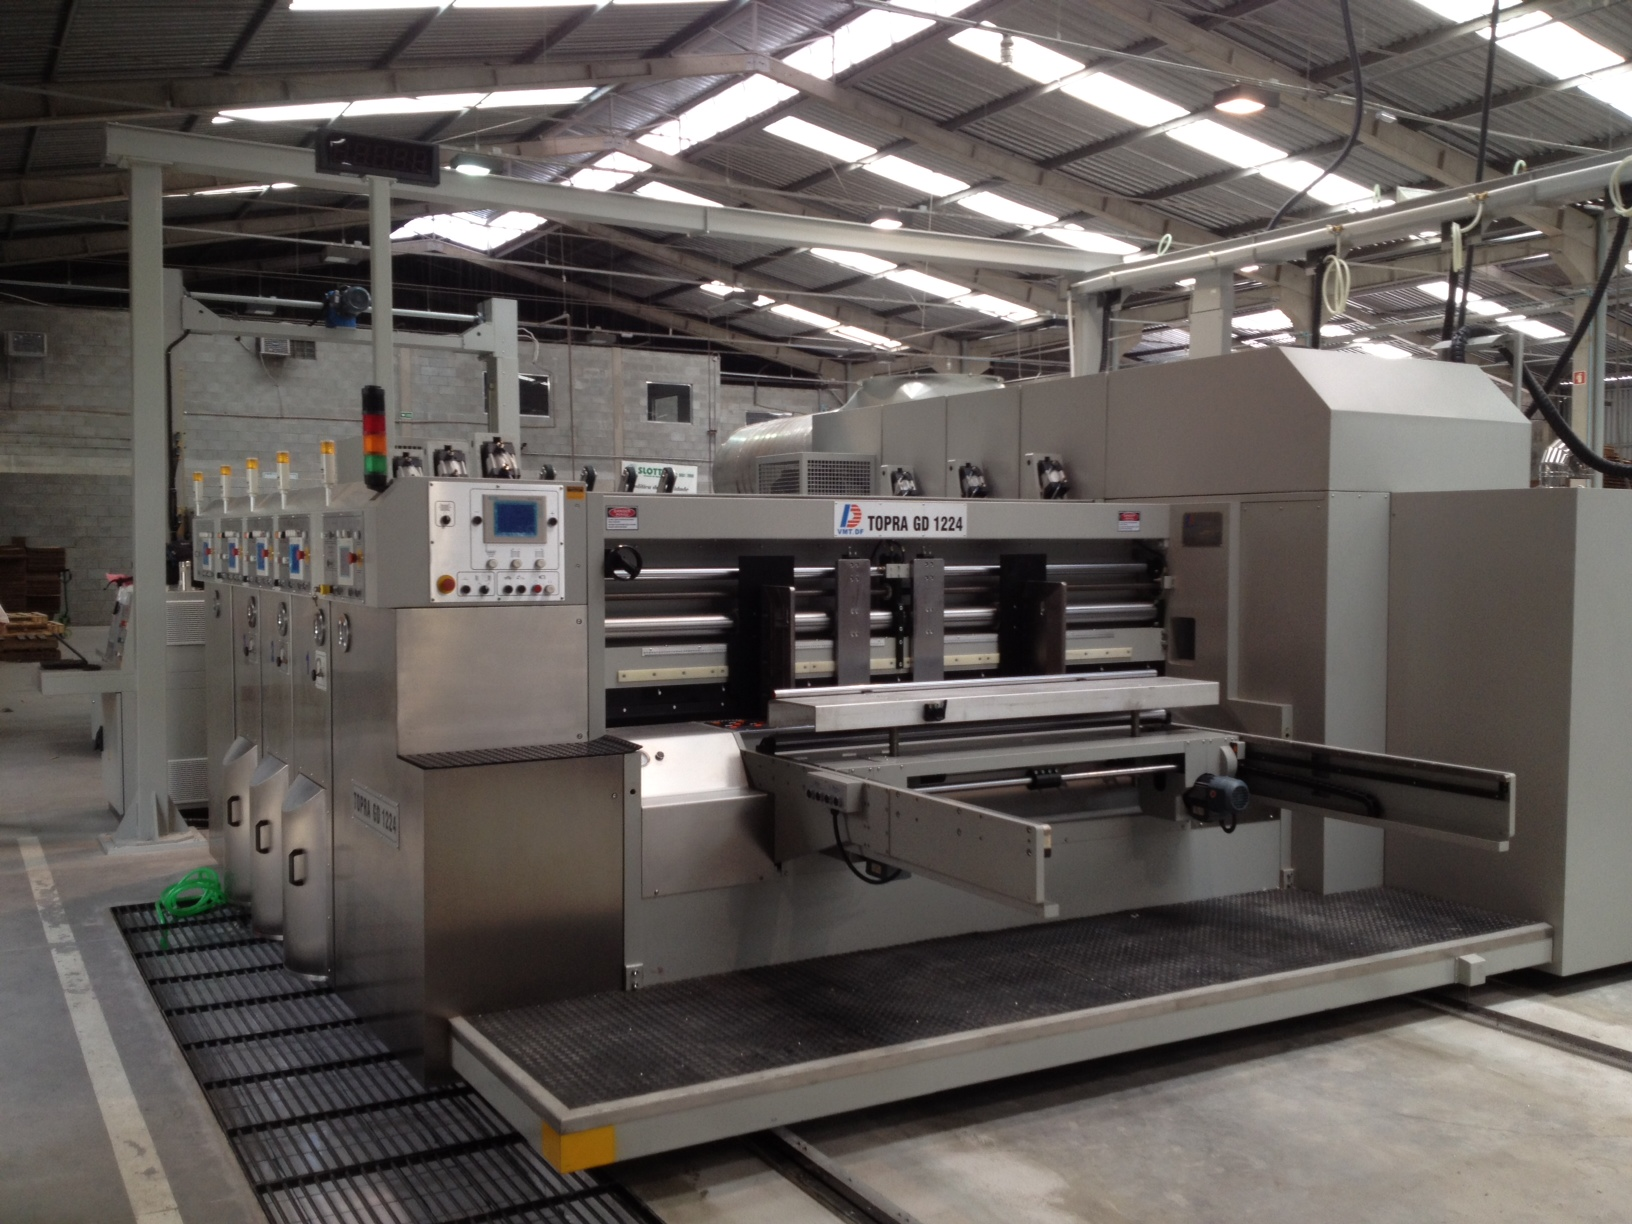 Shown is the Topra GD 1224 (1200mm X 2400mm max feed size)